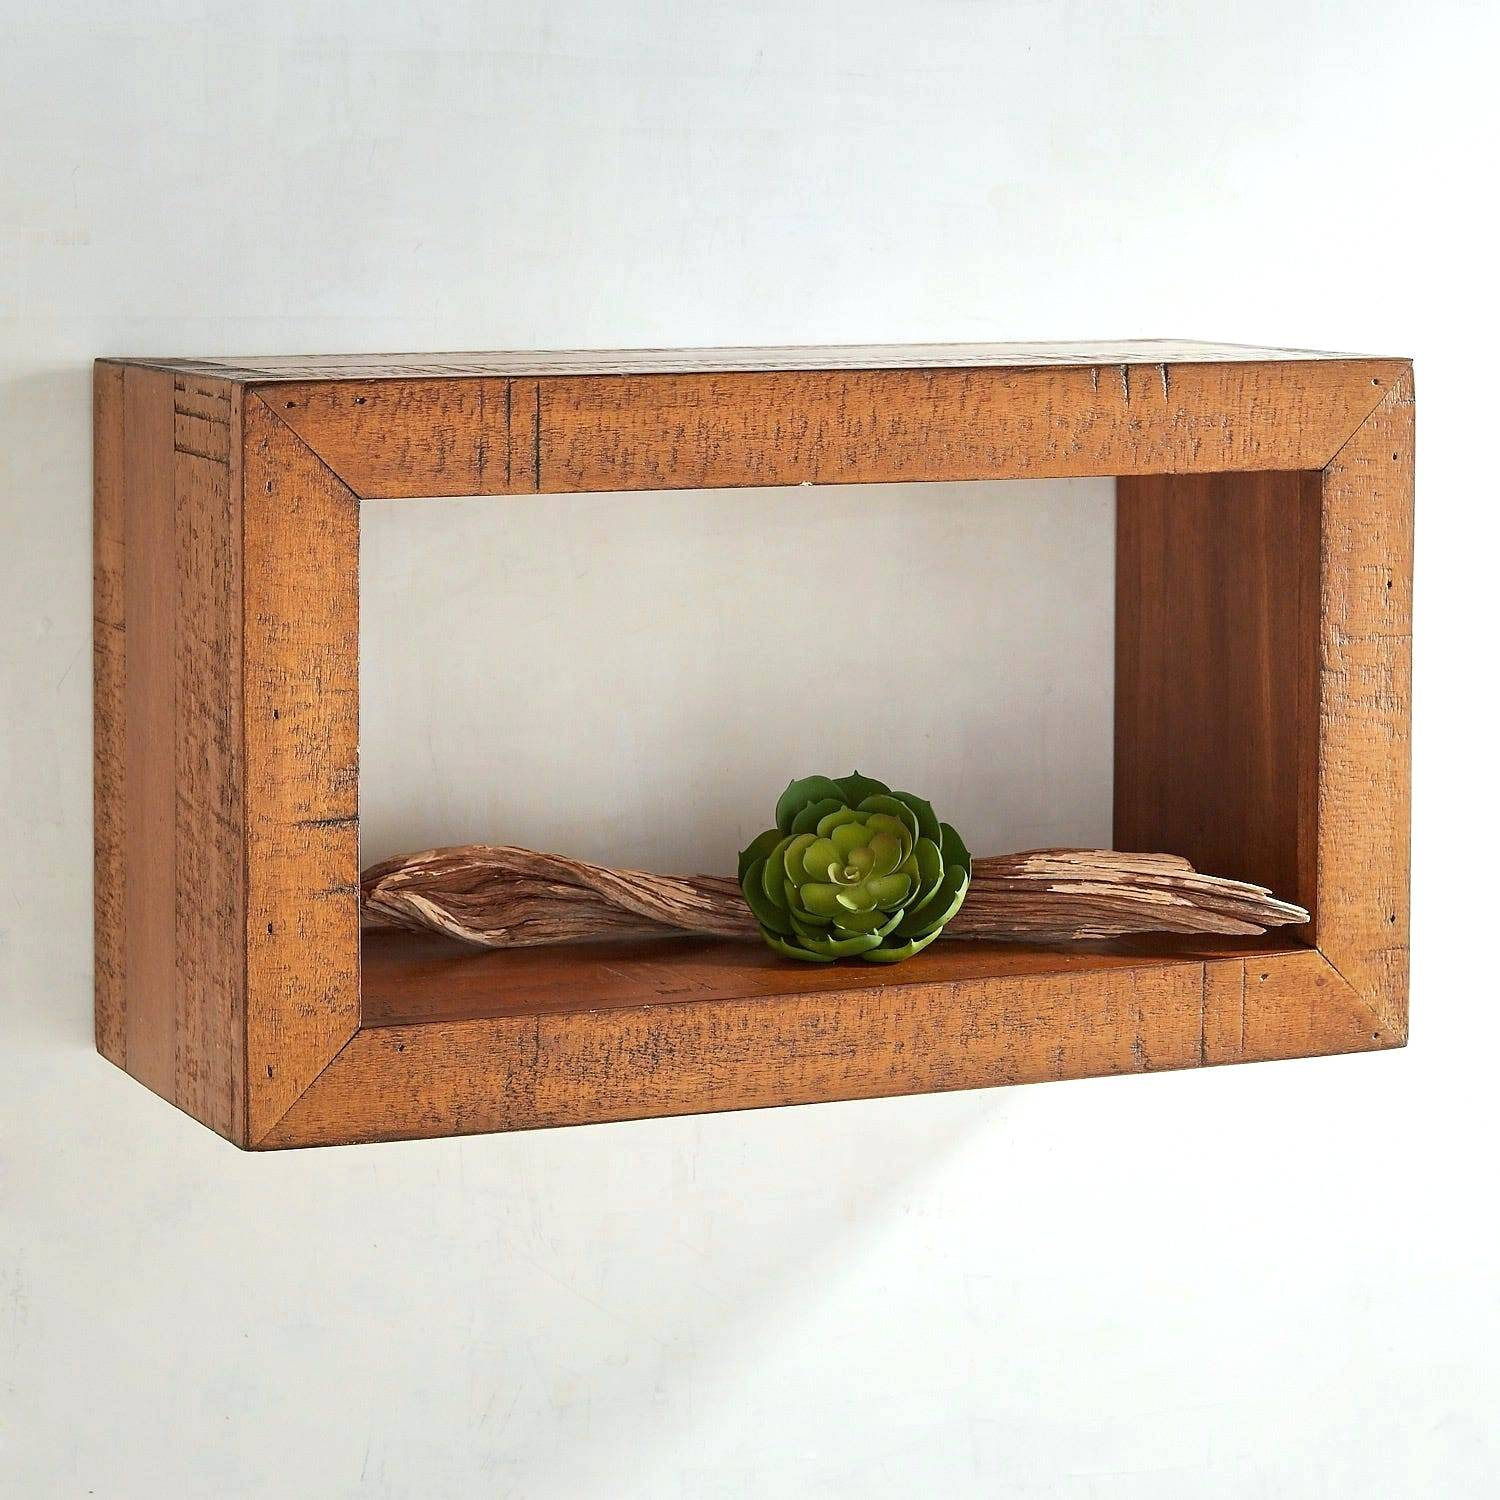 floating wall shelves rustic wood save this item target shelf height above desk kitchen counter storage racks oak mantel pottery barn entertainment small pine unit unusual dark